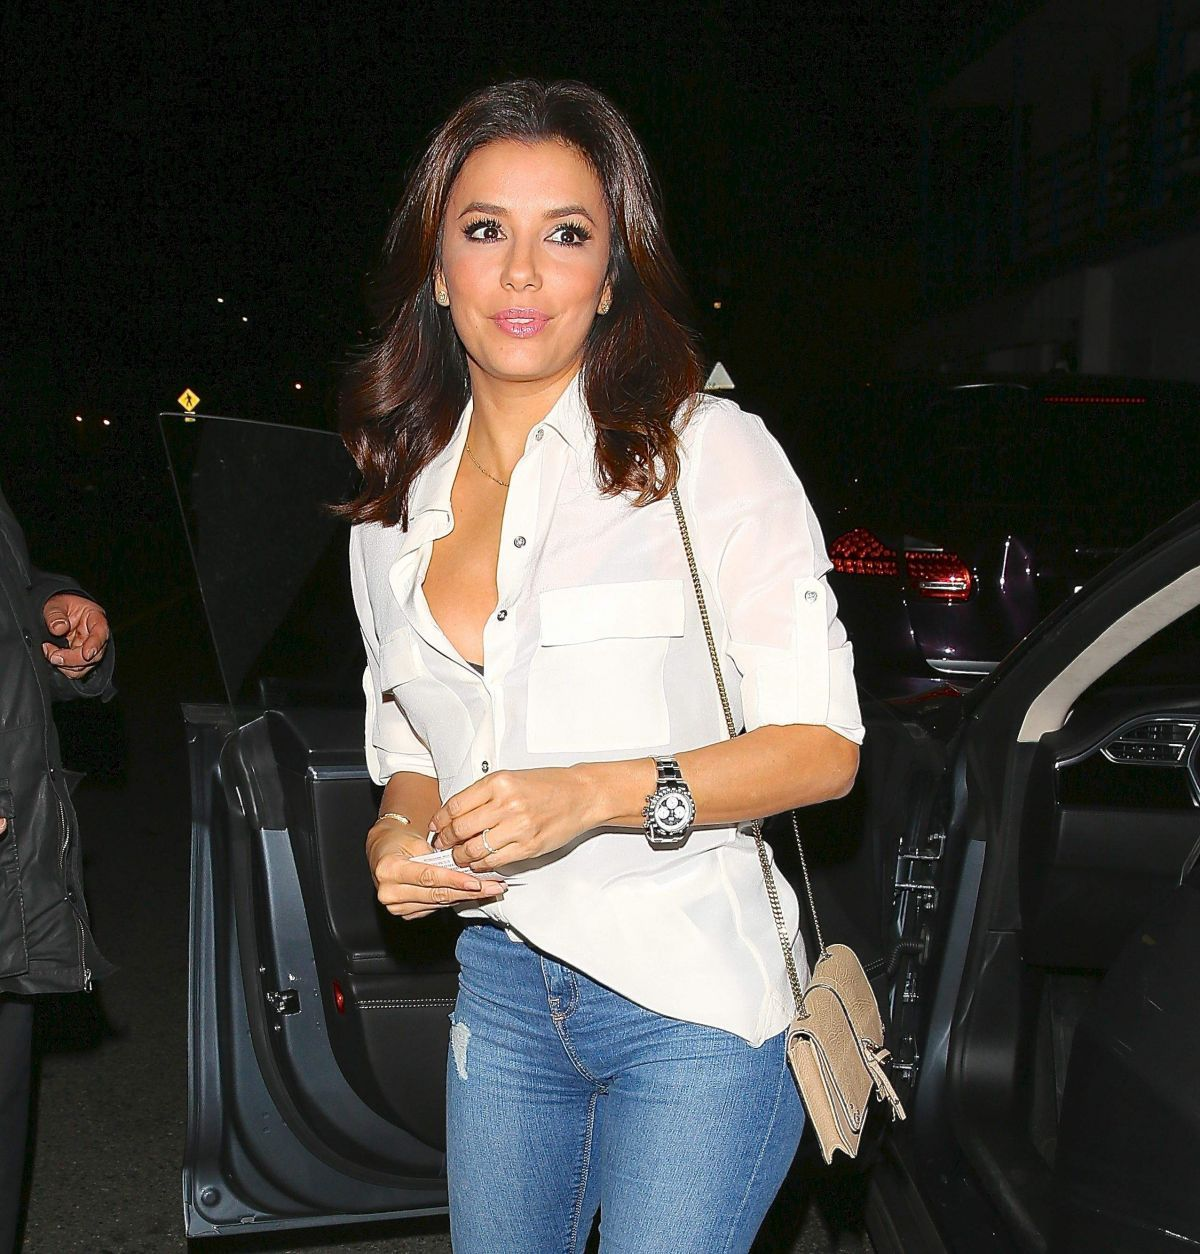 Eva Longoria Arrives At Giorgio Baldi Restaurant In Los Angeles